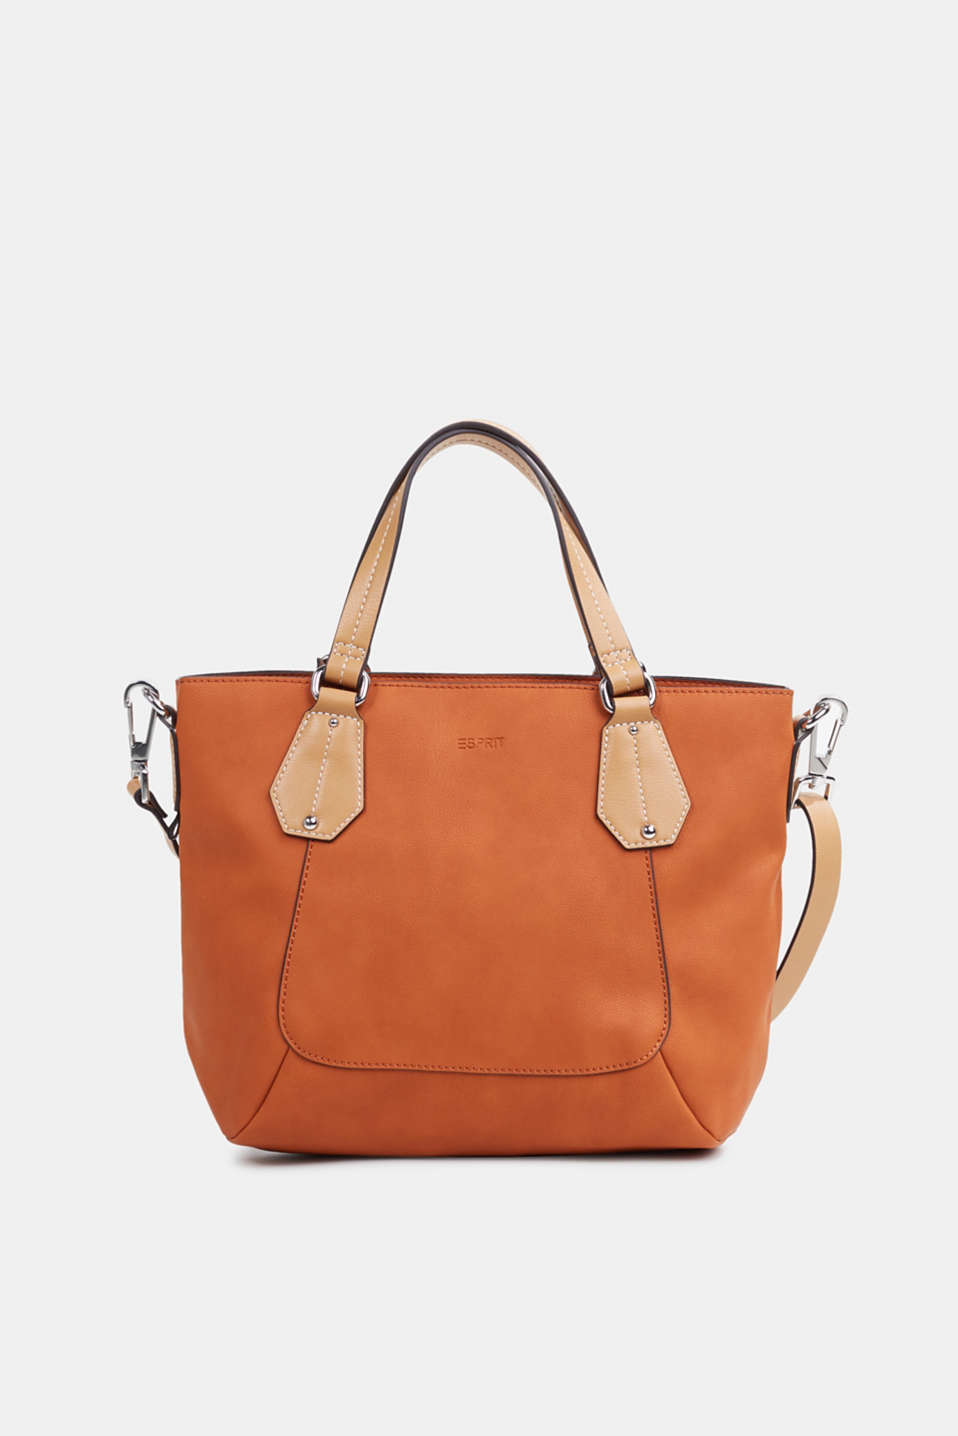 Esprit - Schultertasche in Leder-Optik, vegan